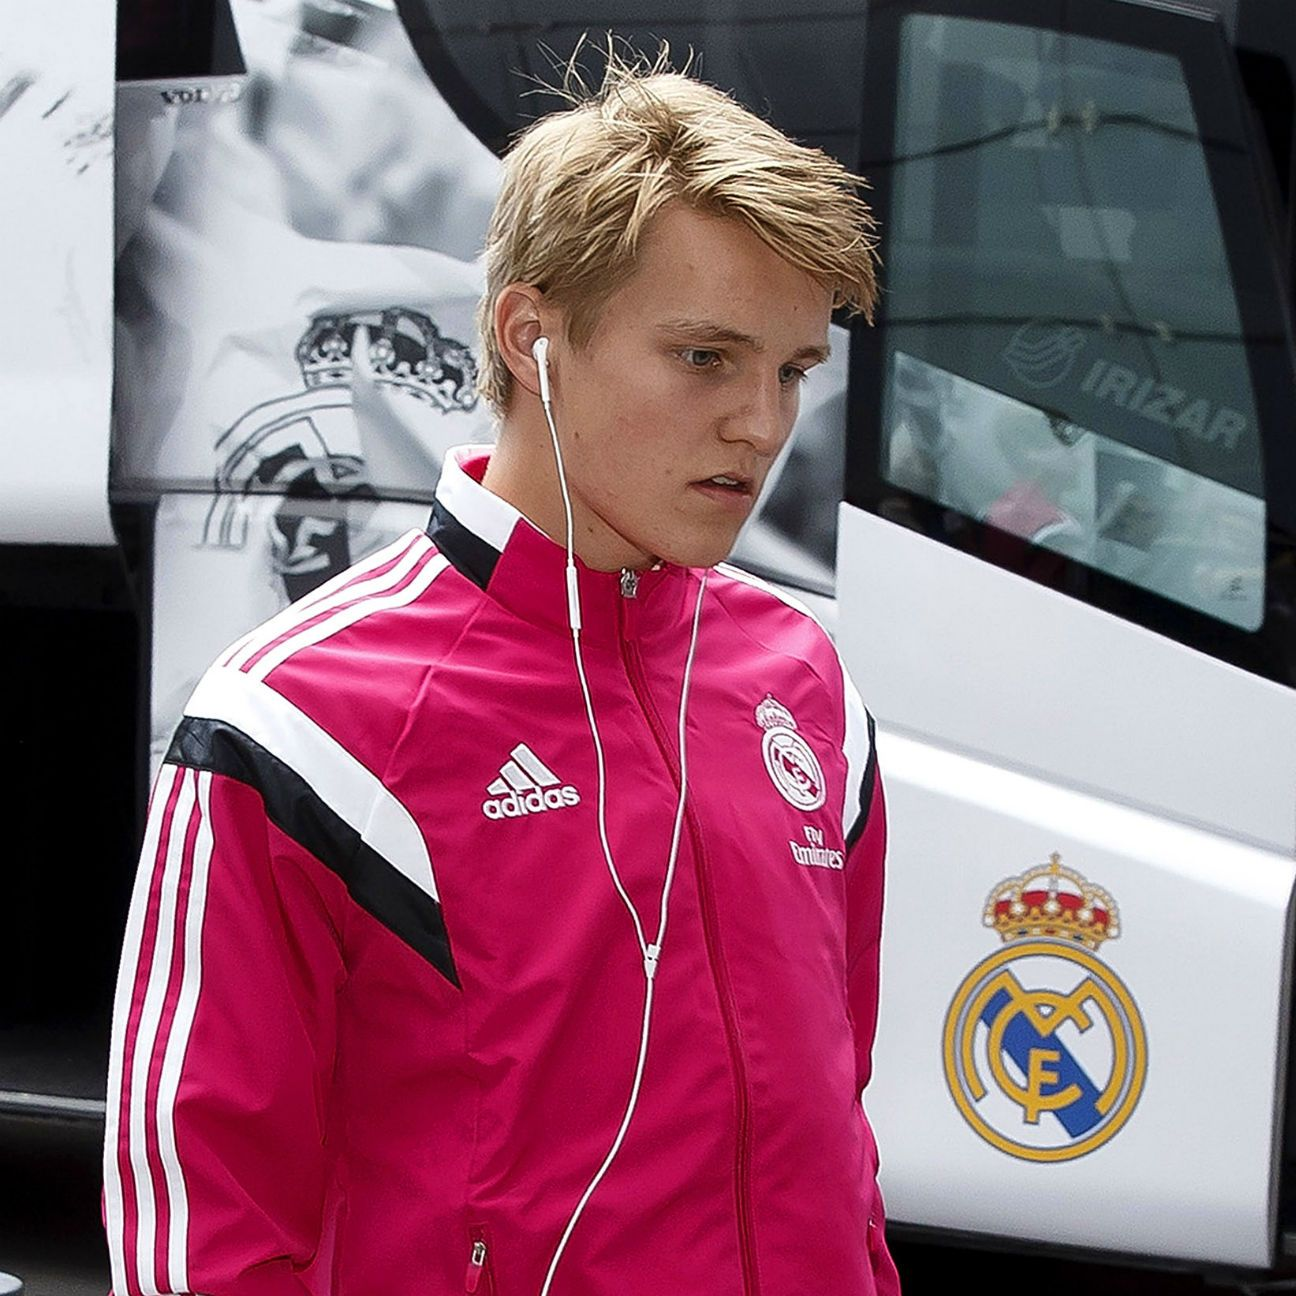 Martin Odegaard made the match-day roster in Real Madrid's recent home win over Almeria.